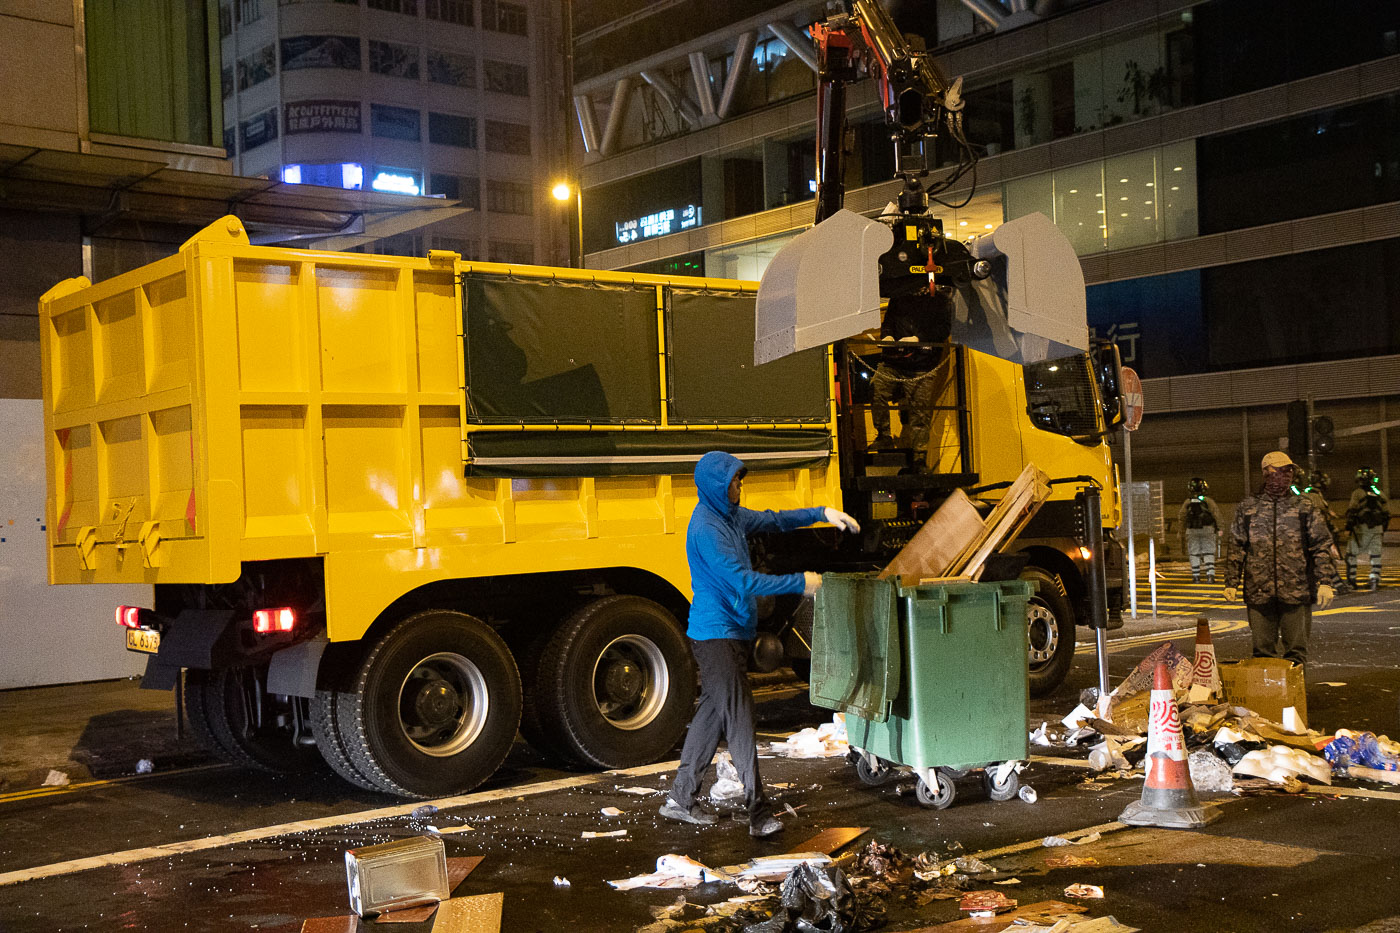 Dump truck with crane picks up barricade debris left by protesters.